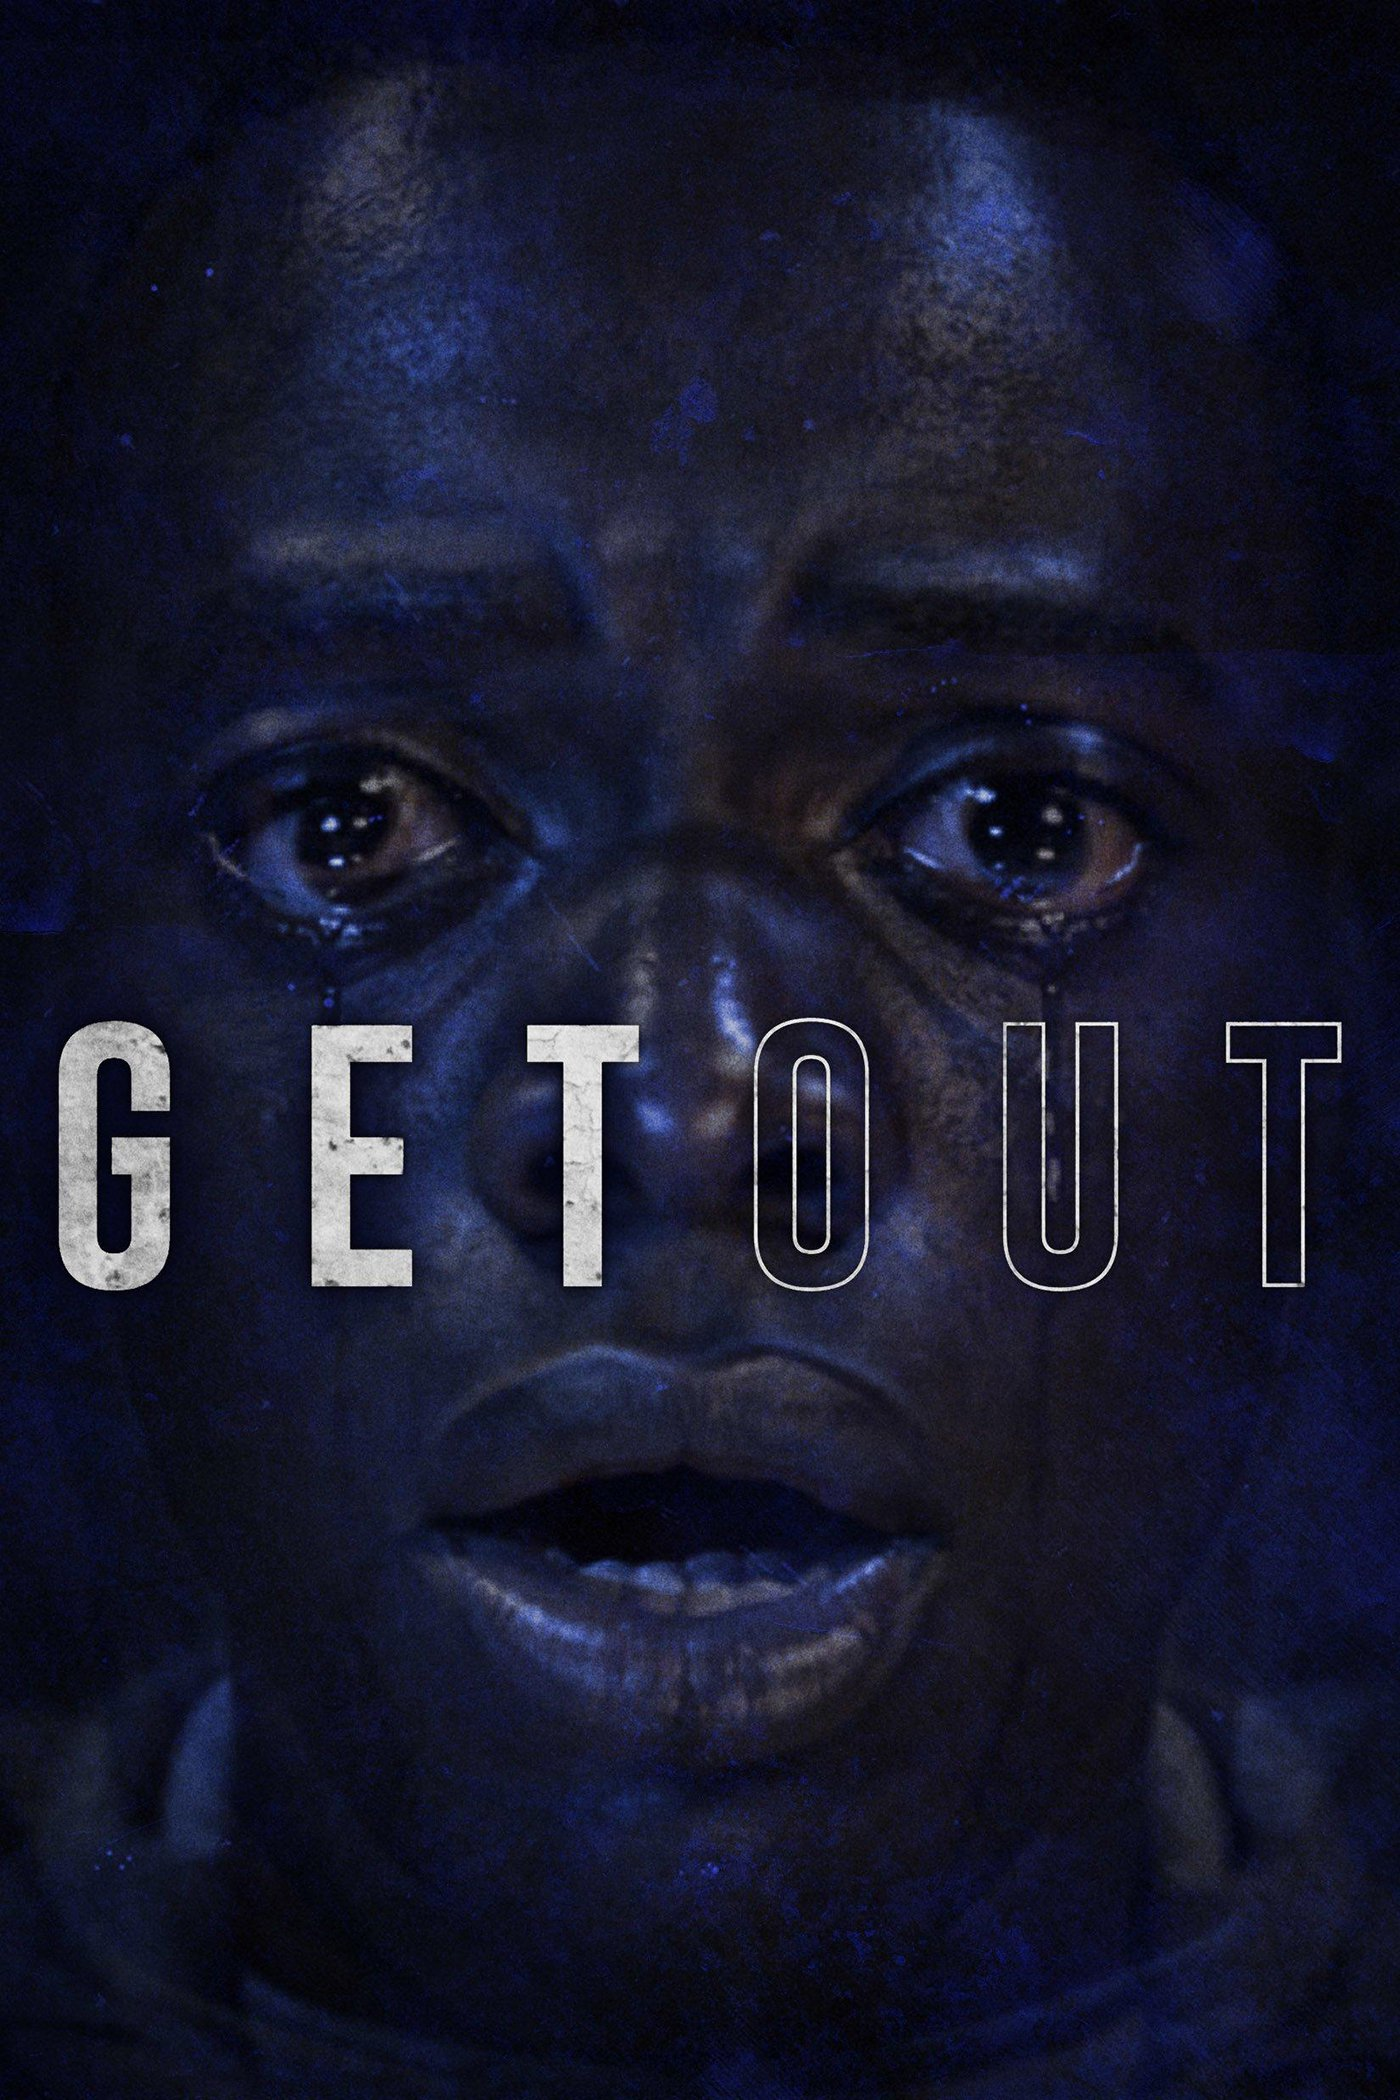 This is a poster for the film Get Out.